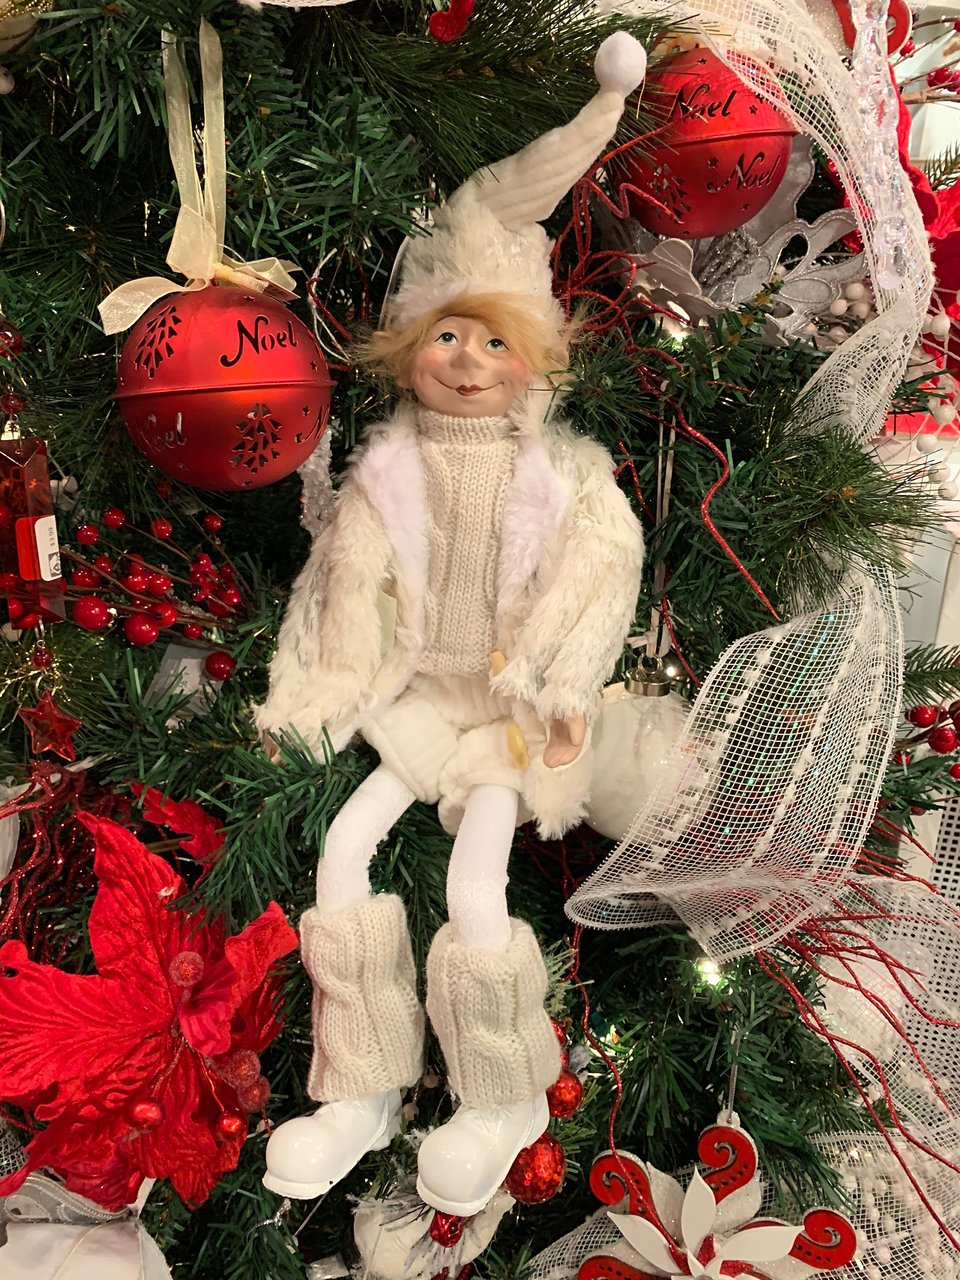 Christmas Activities 2021 Near Fraser Mi Glenda S Christmas Cottage Abbotsford 2021 All You Need To Know Before You Go Tours Tickets With Photos Tripadvisor